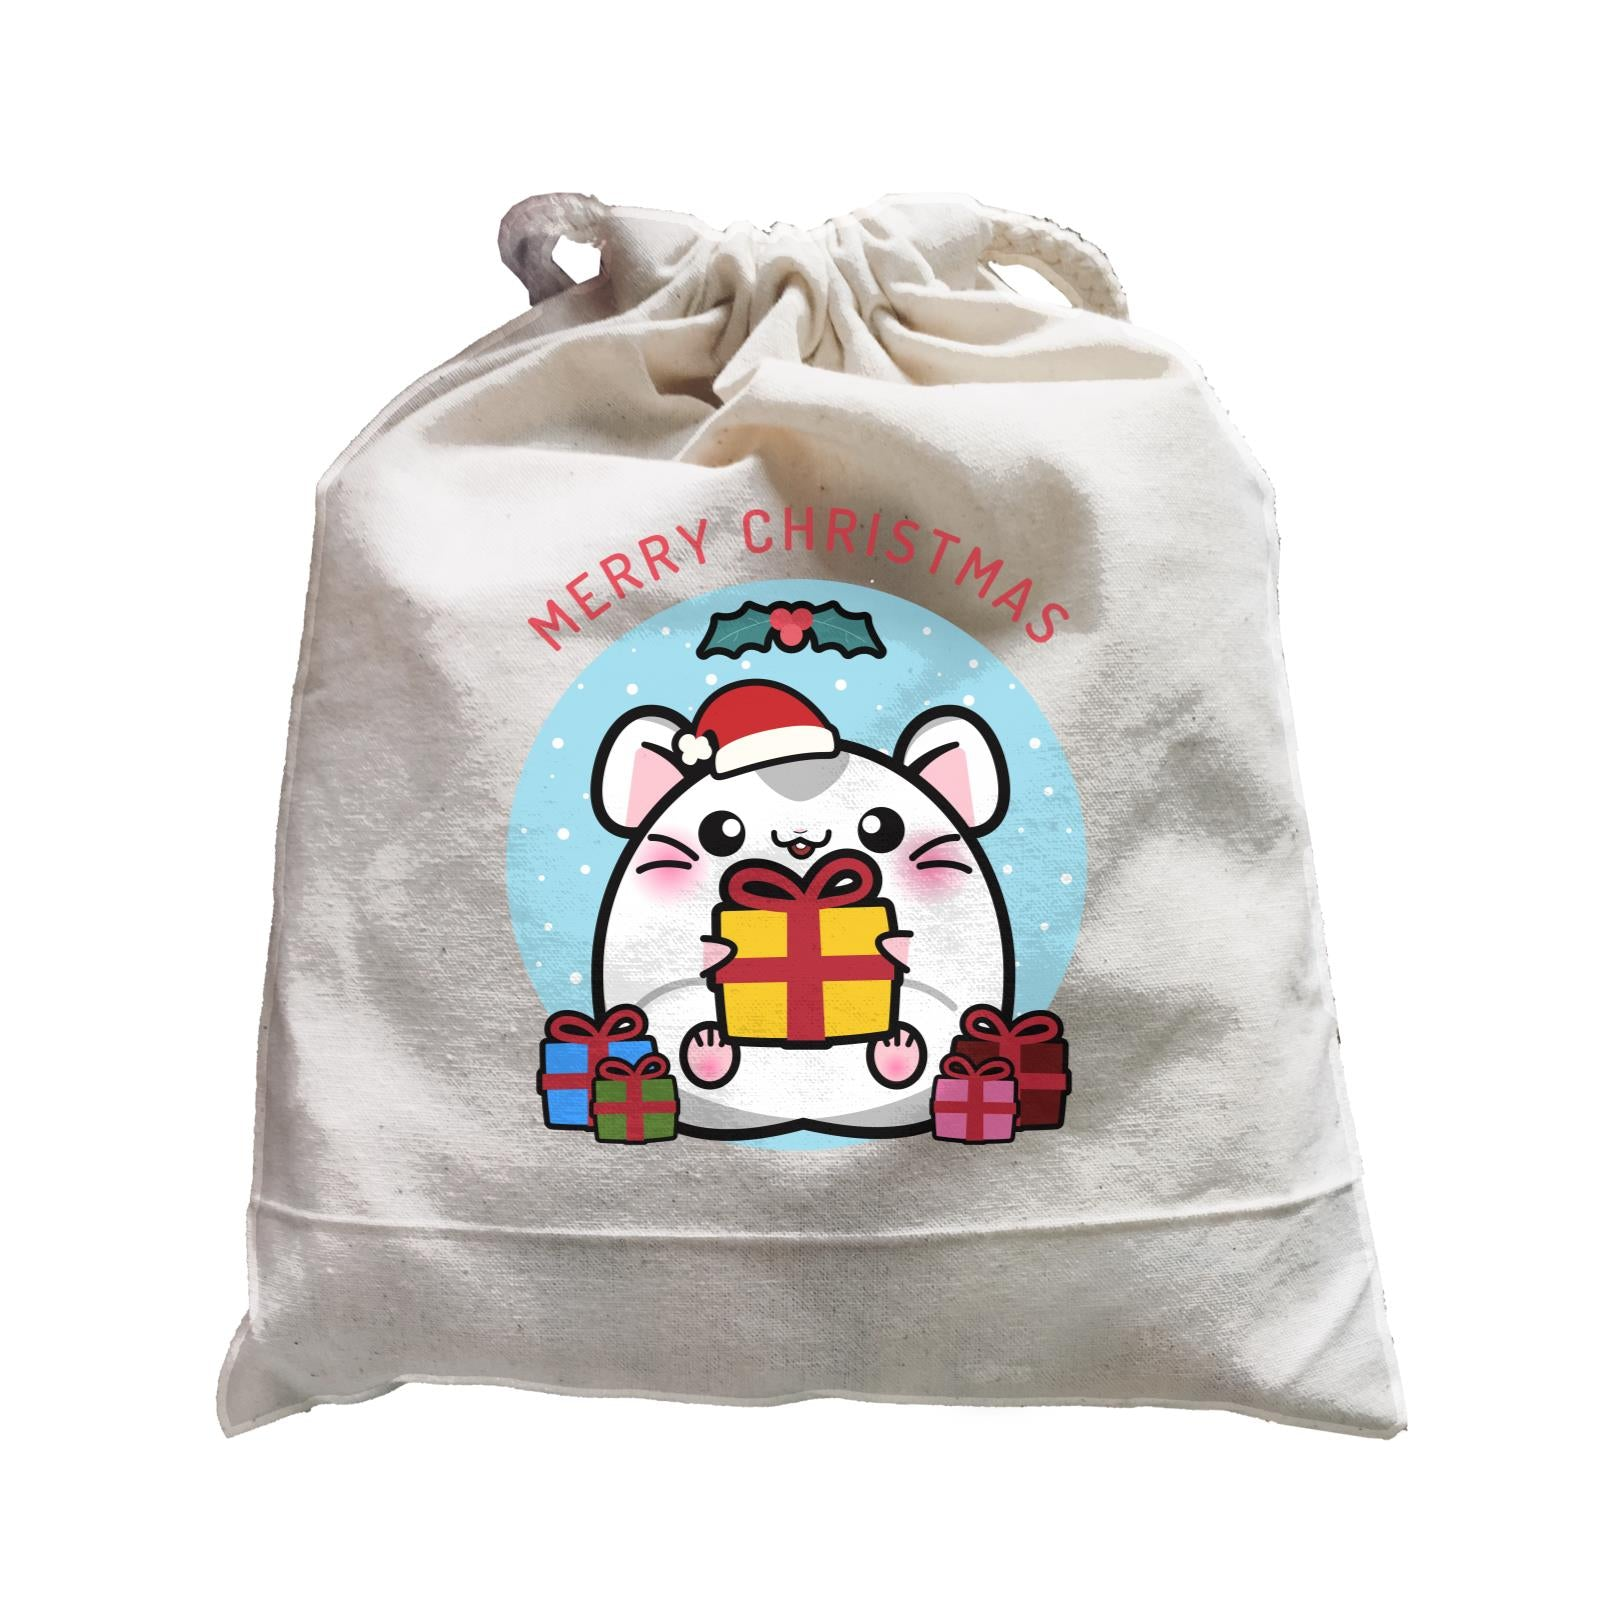 Merry Christmas Cute Santa Santa Boy Hamster with Gifts Satchel